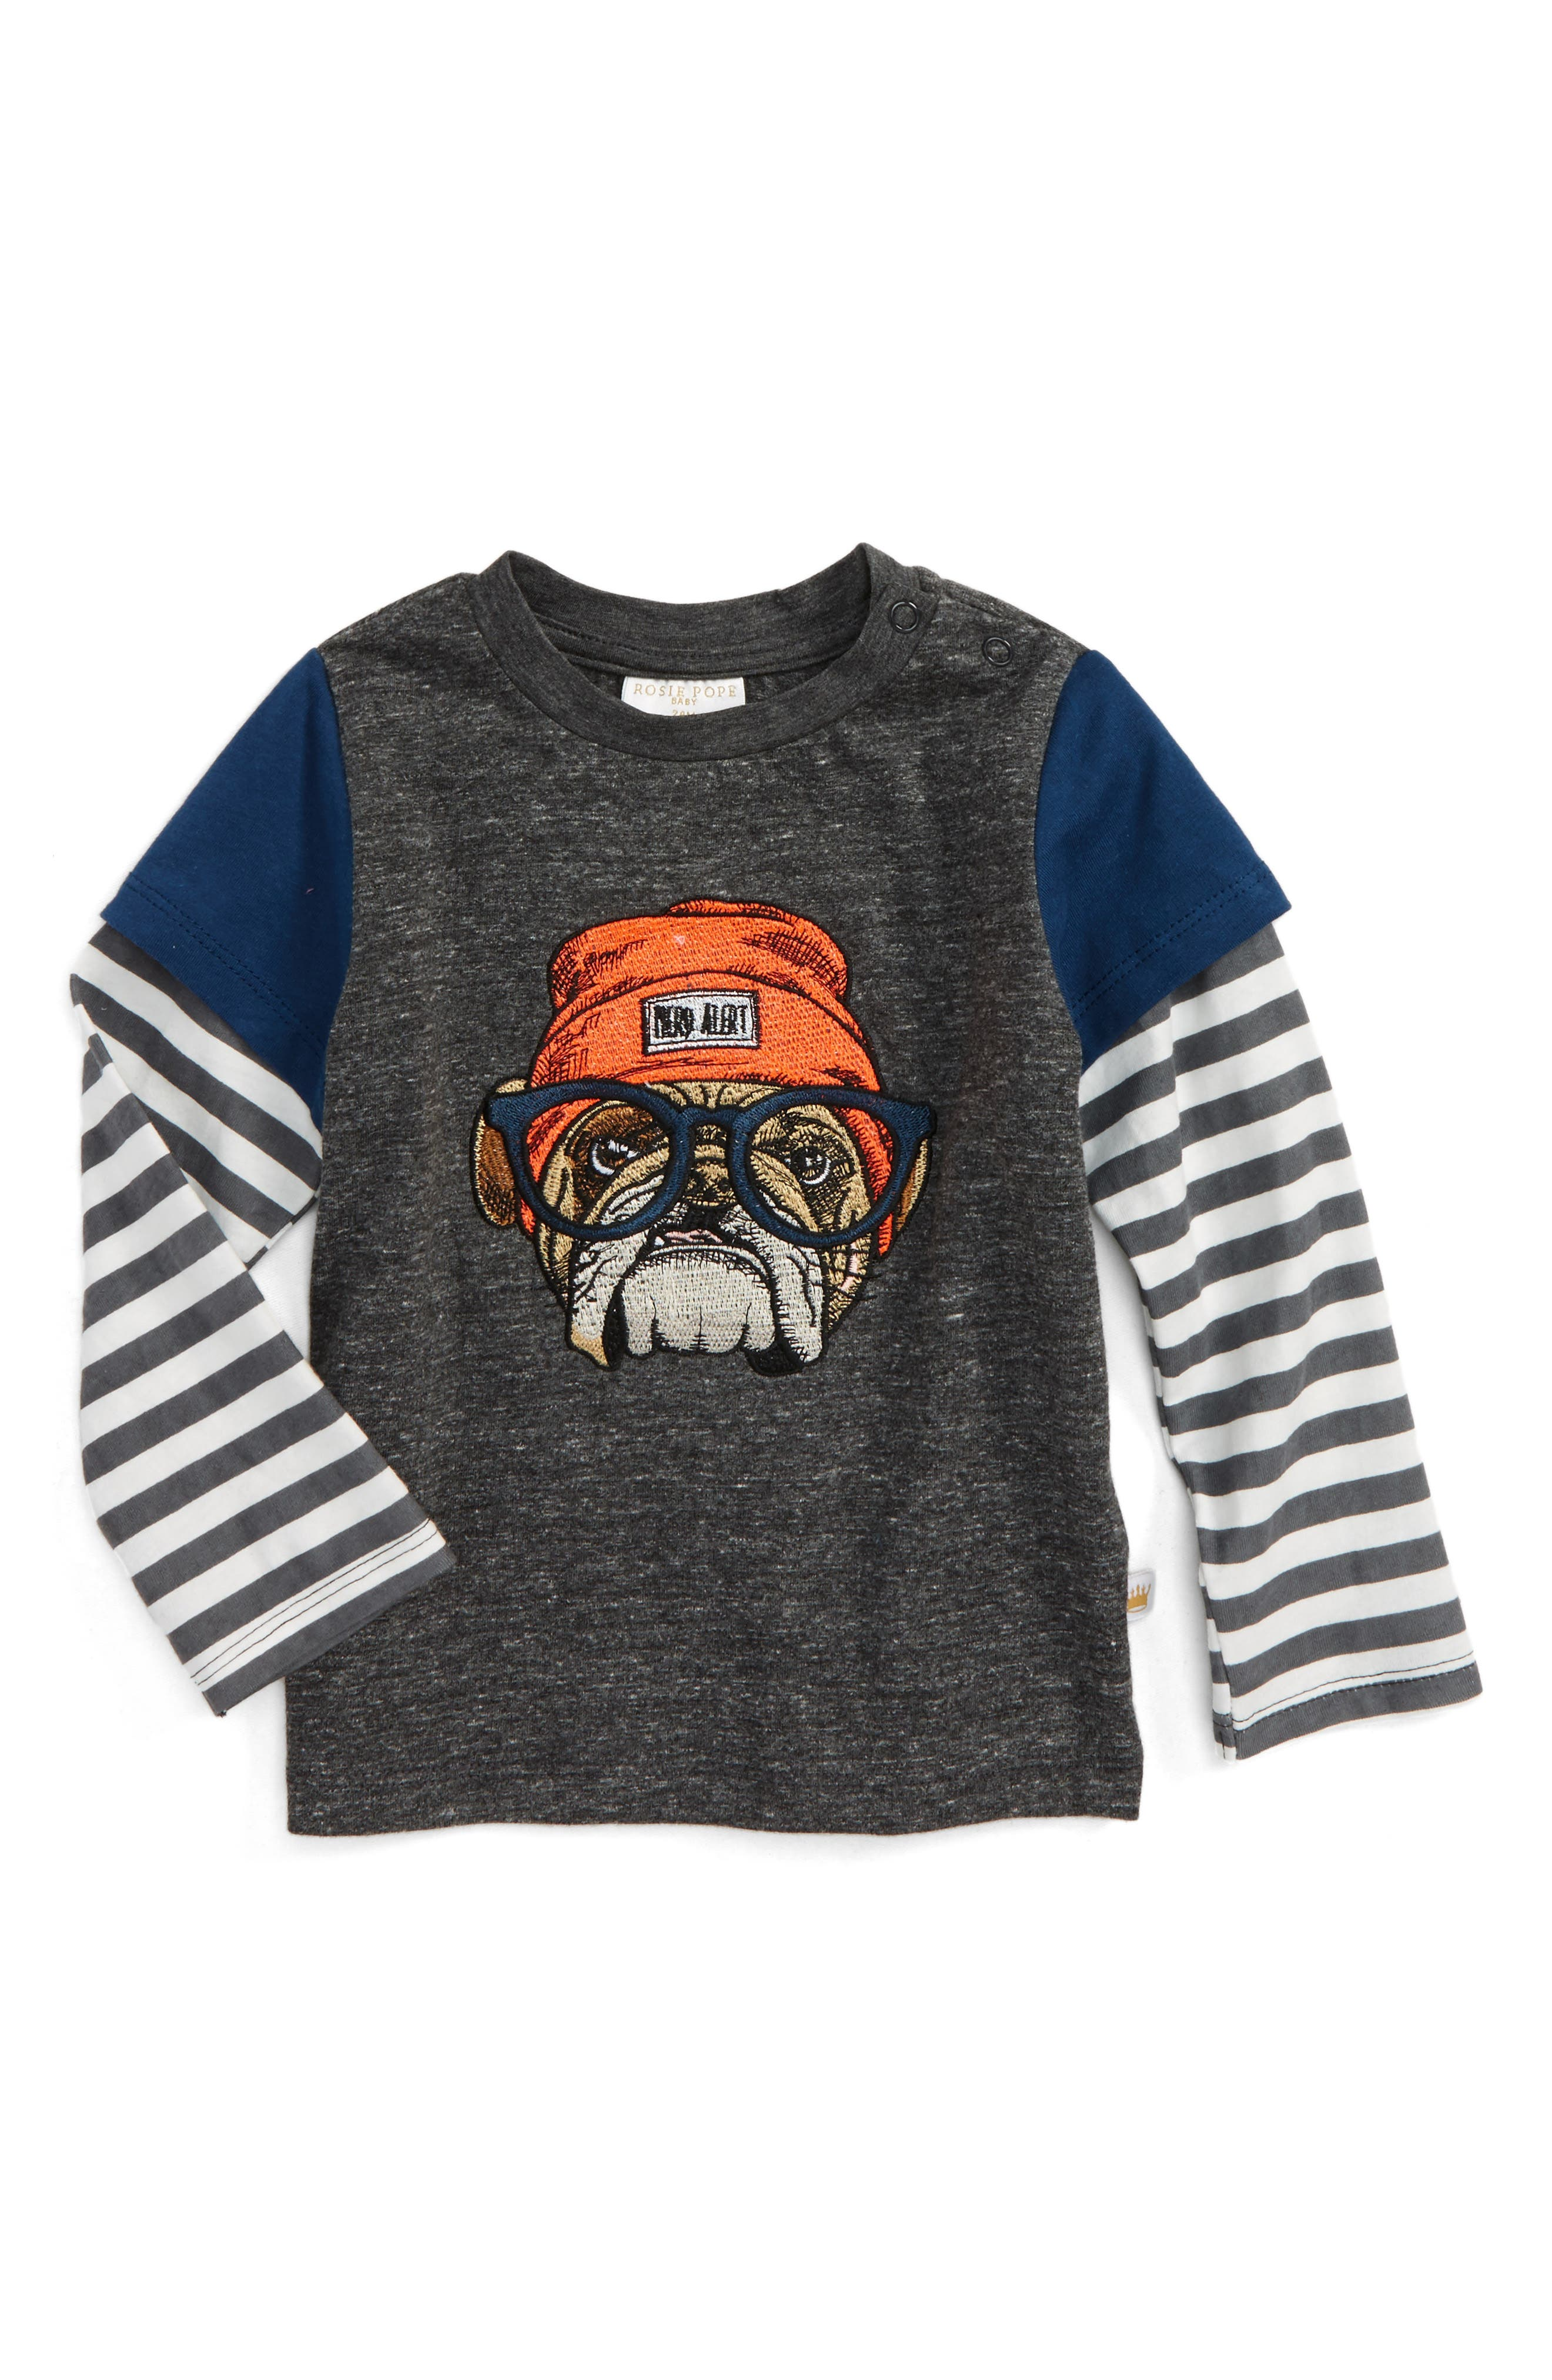 Alternate Image 1 Selected - Rosie Pope Embroidered Dog Layered Shirt (Baby Boys)